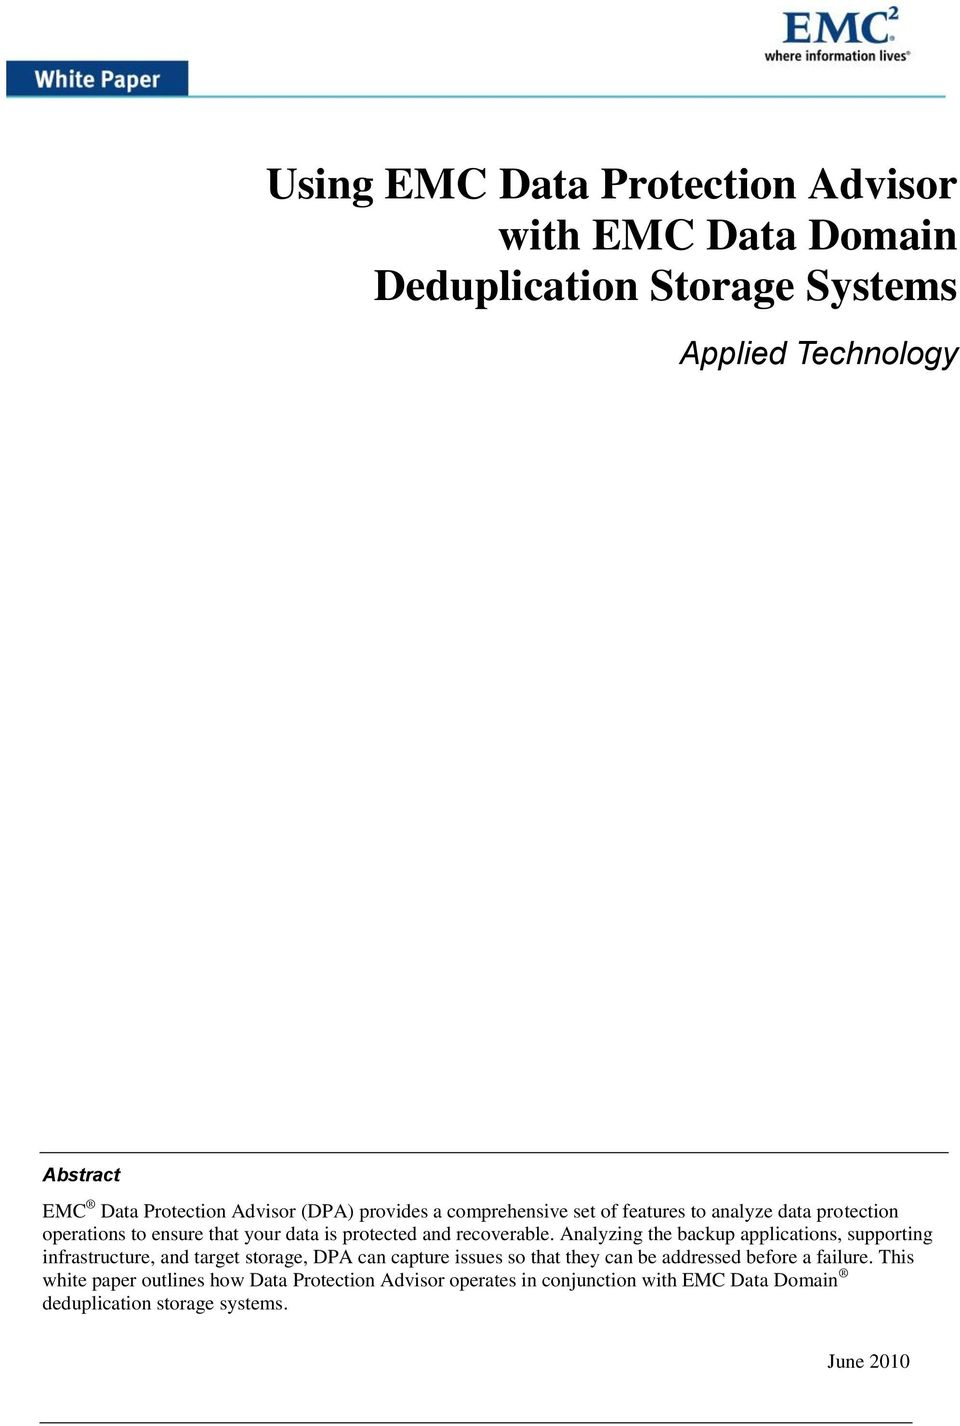 Analyzing the backup applications, supporting infrastructure, and target storage, DPA can capture issues so that they can be addressed before a